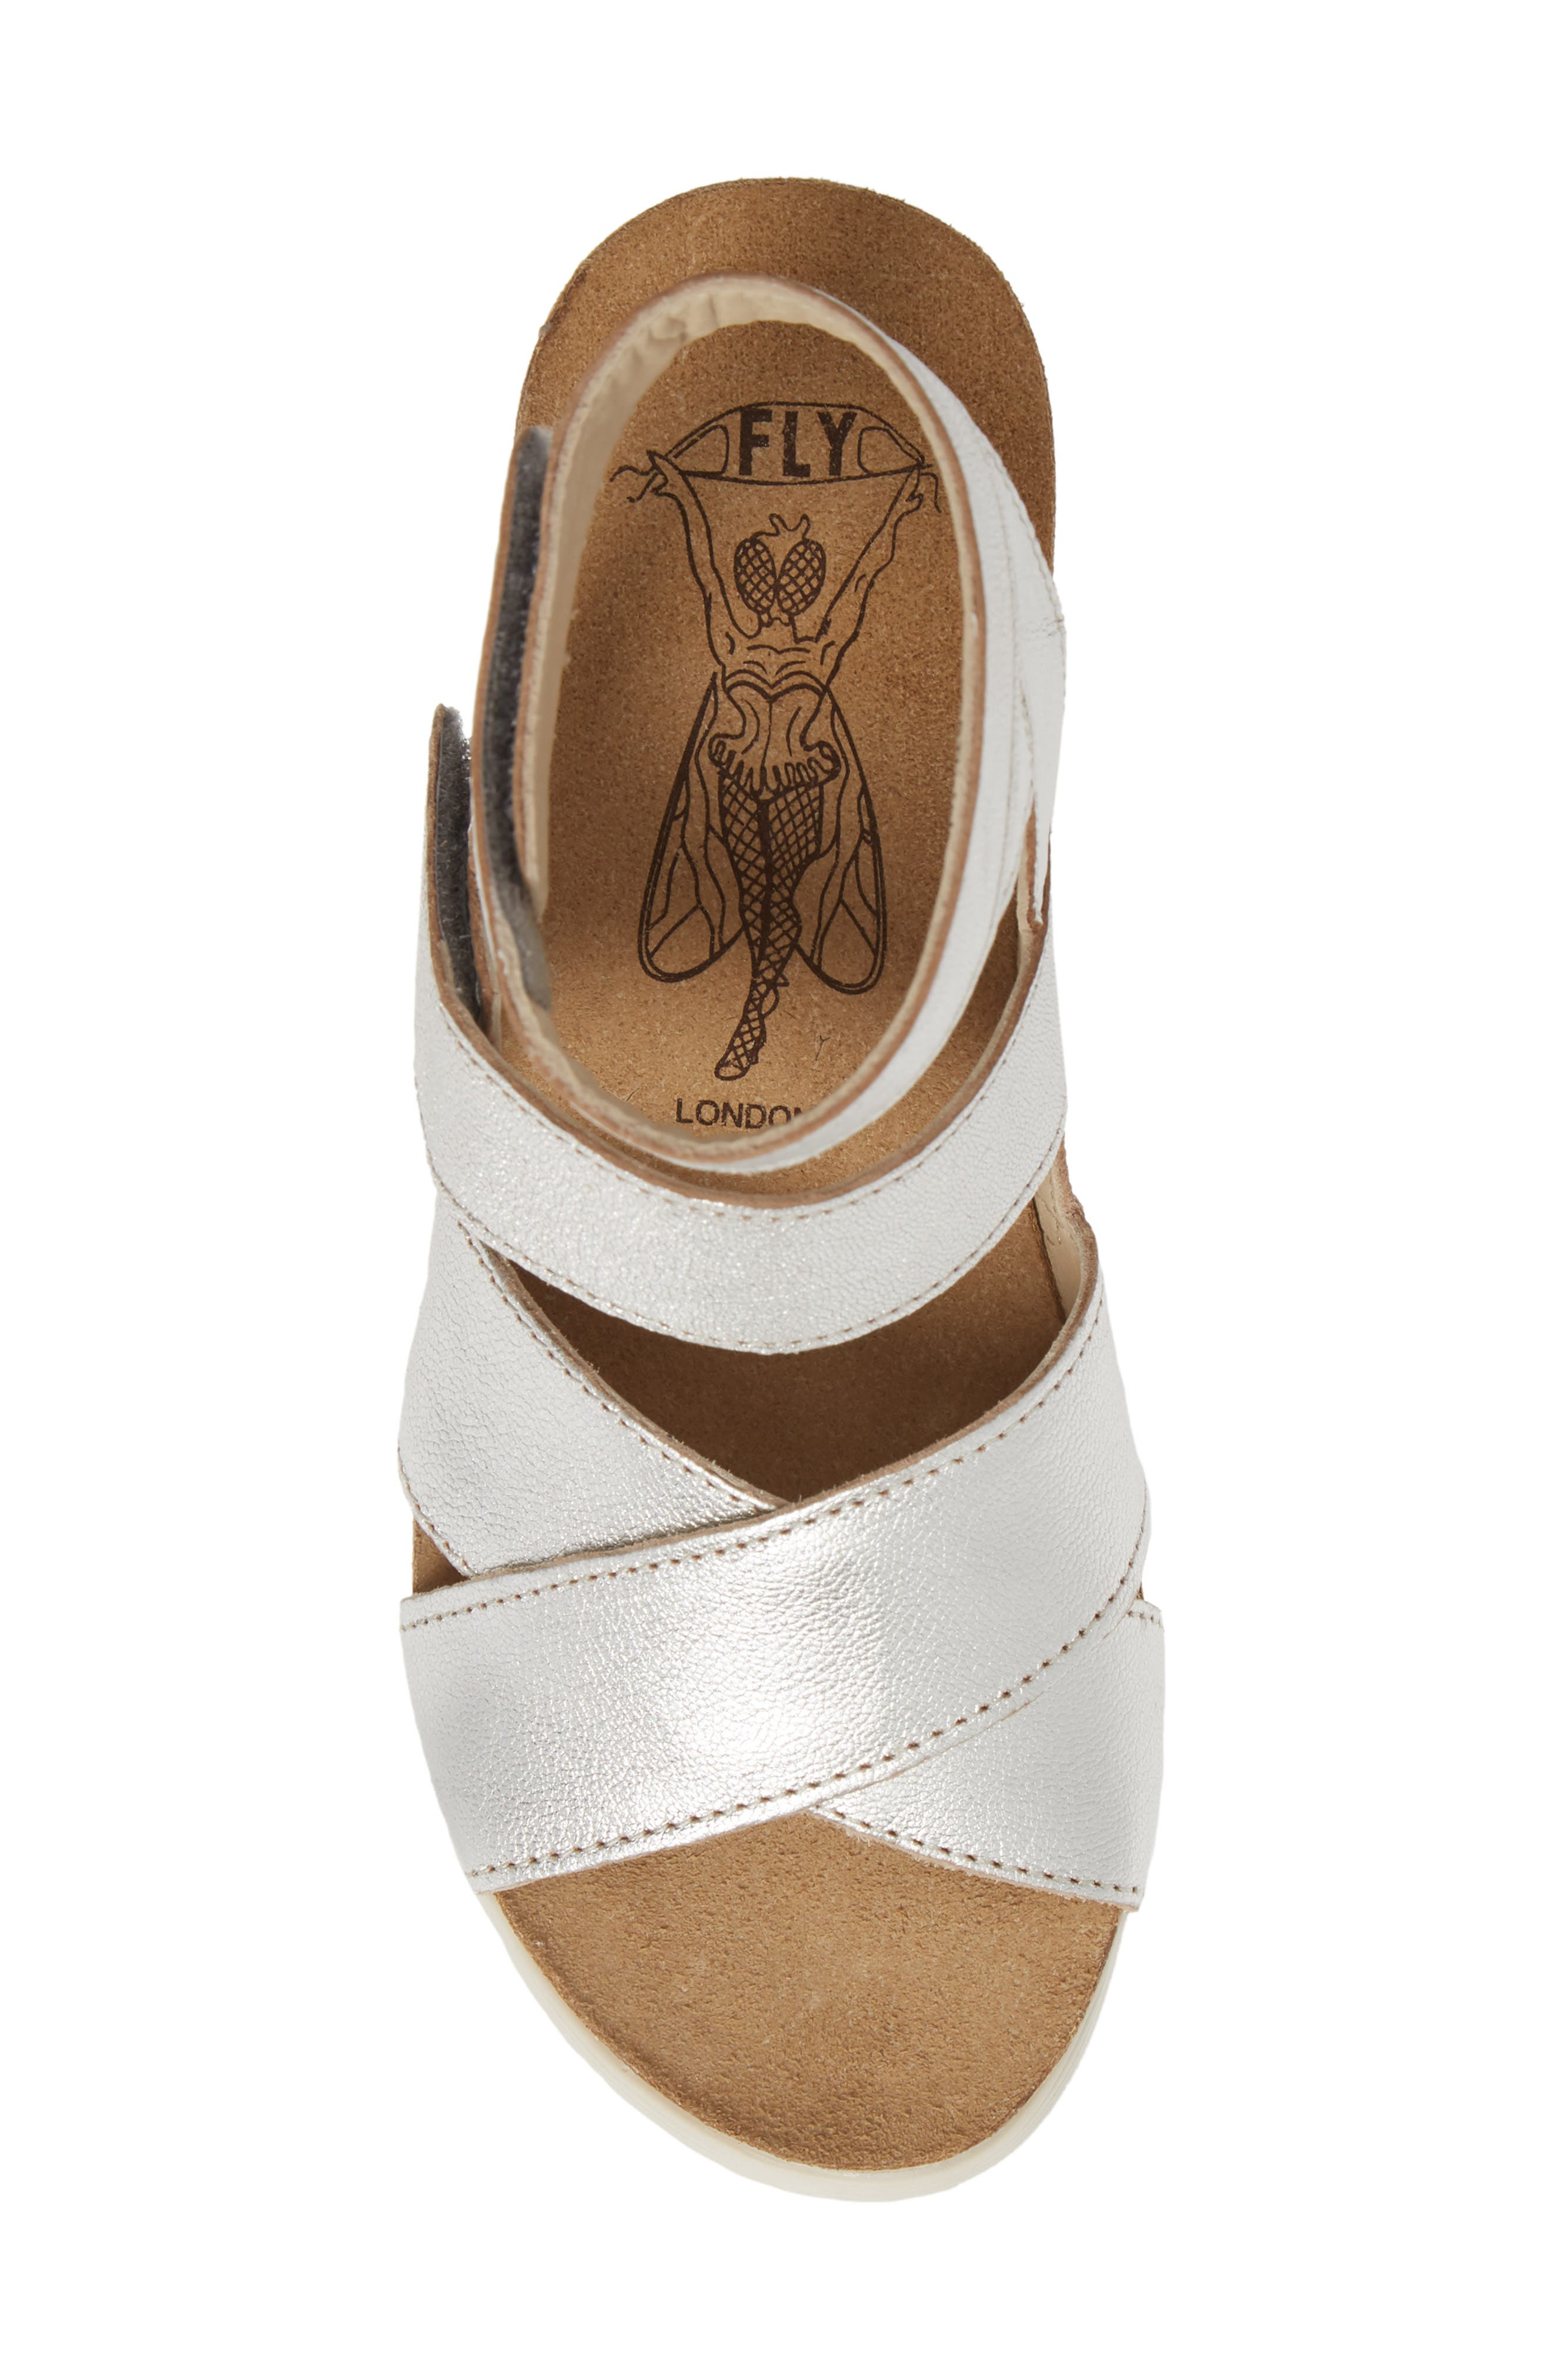 FLY LONDON, 'Wege' Leather Sandal, Alternate thumbnail 5, color, SILVER LEATHER